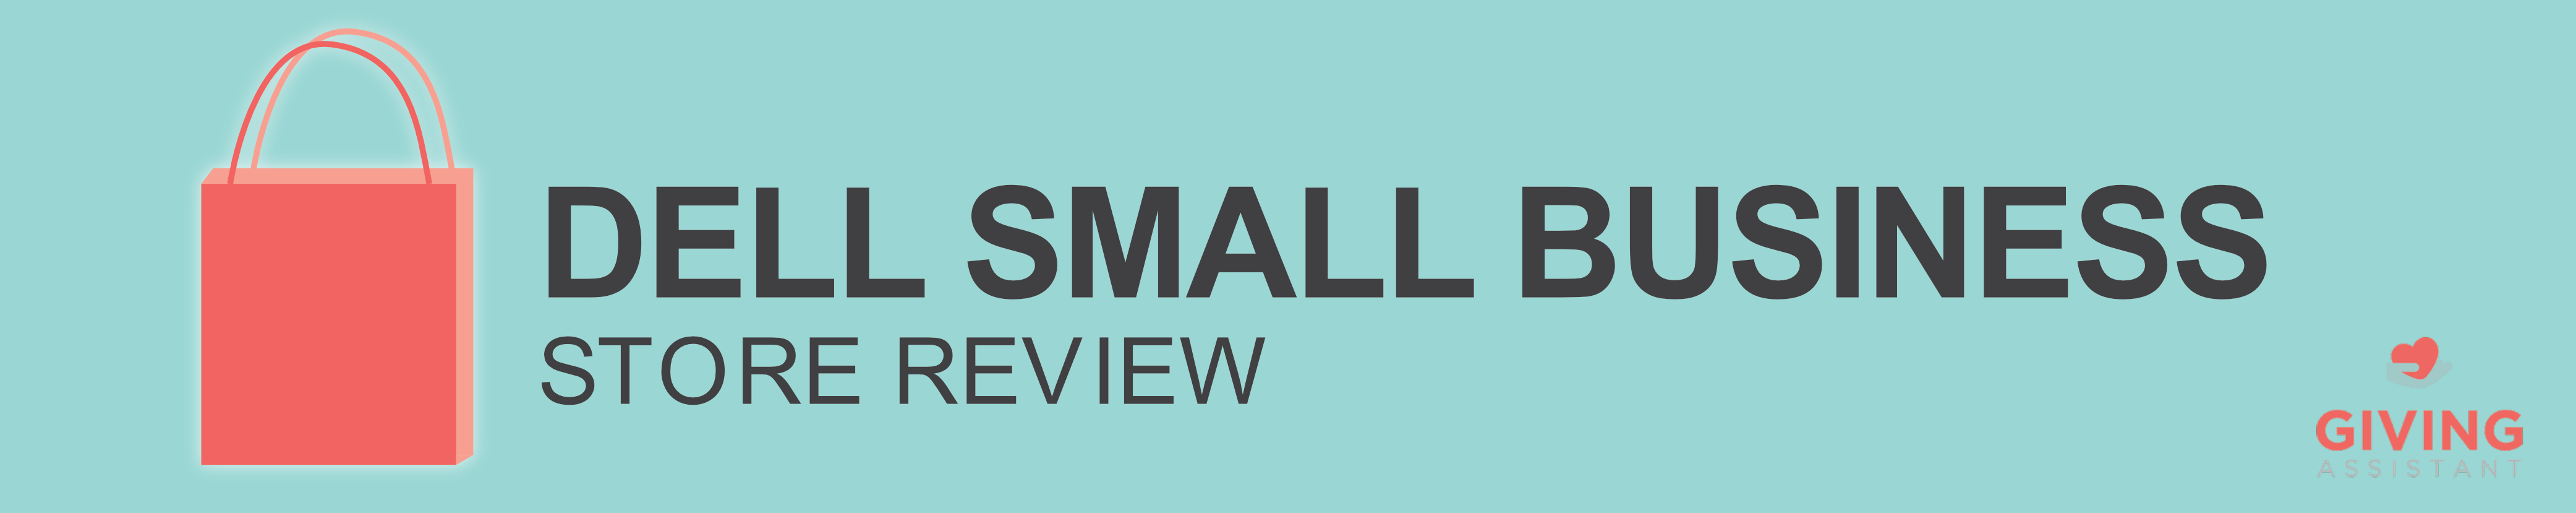 DELL_SMALL_BUSINESS_review